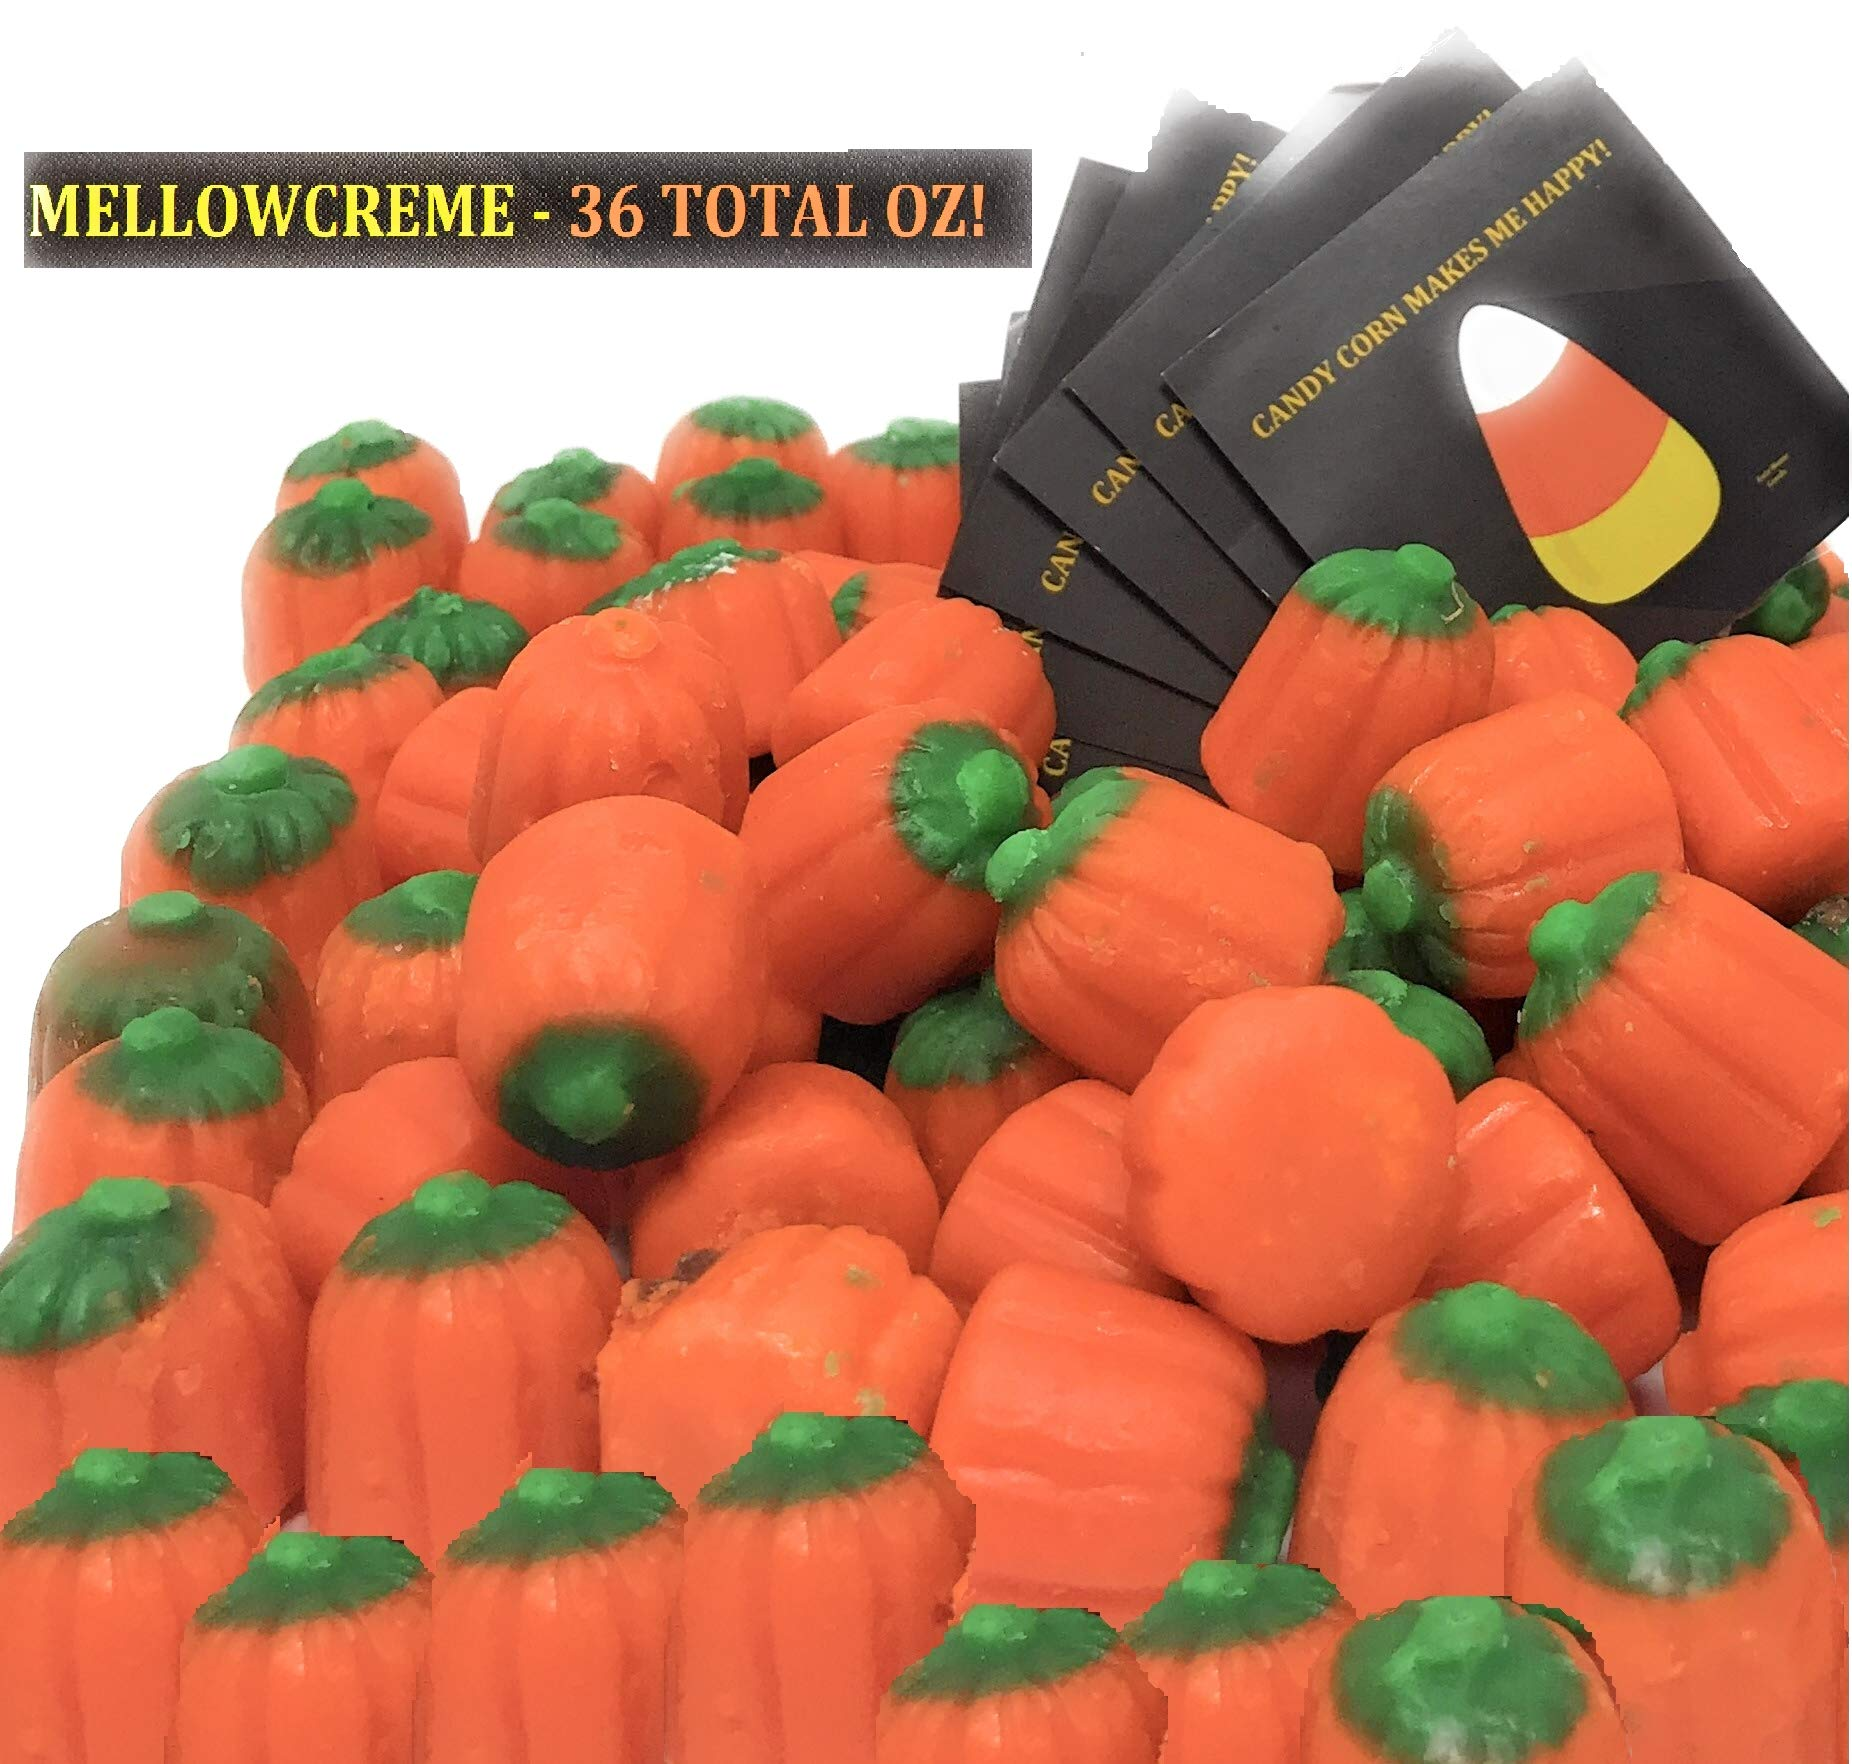 Brachs Mellowcreme Pumpkins, 36oz Total w/ Bonus Stickers by Brach's